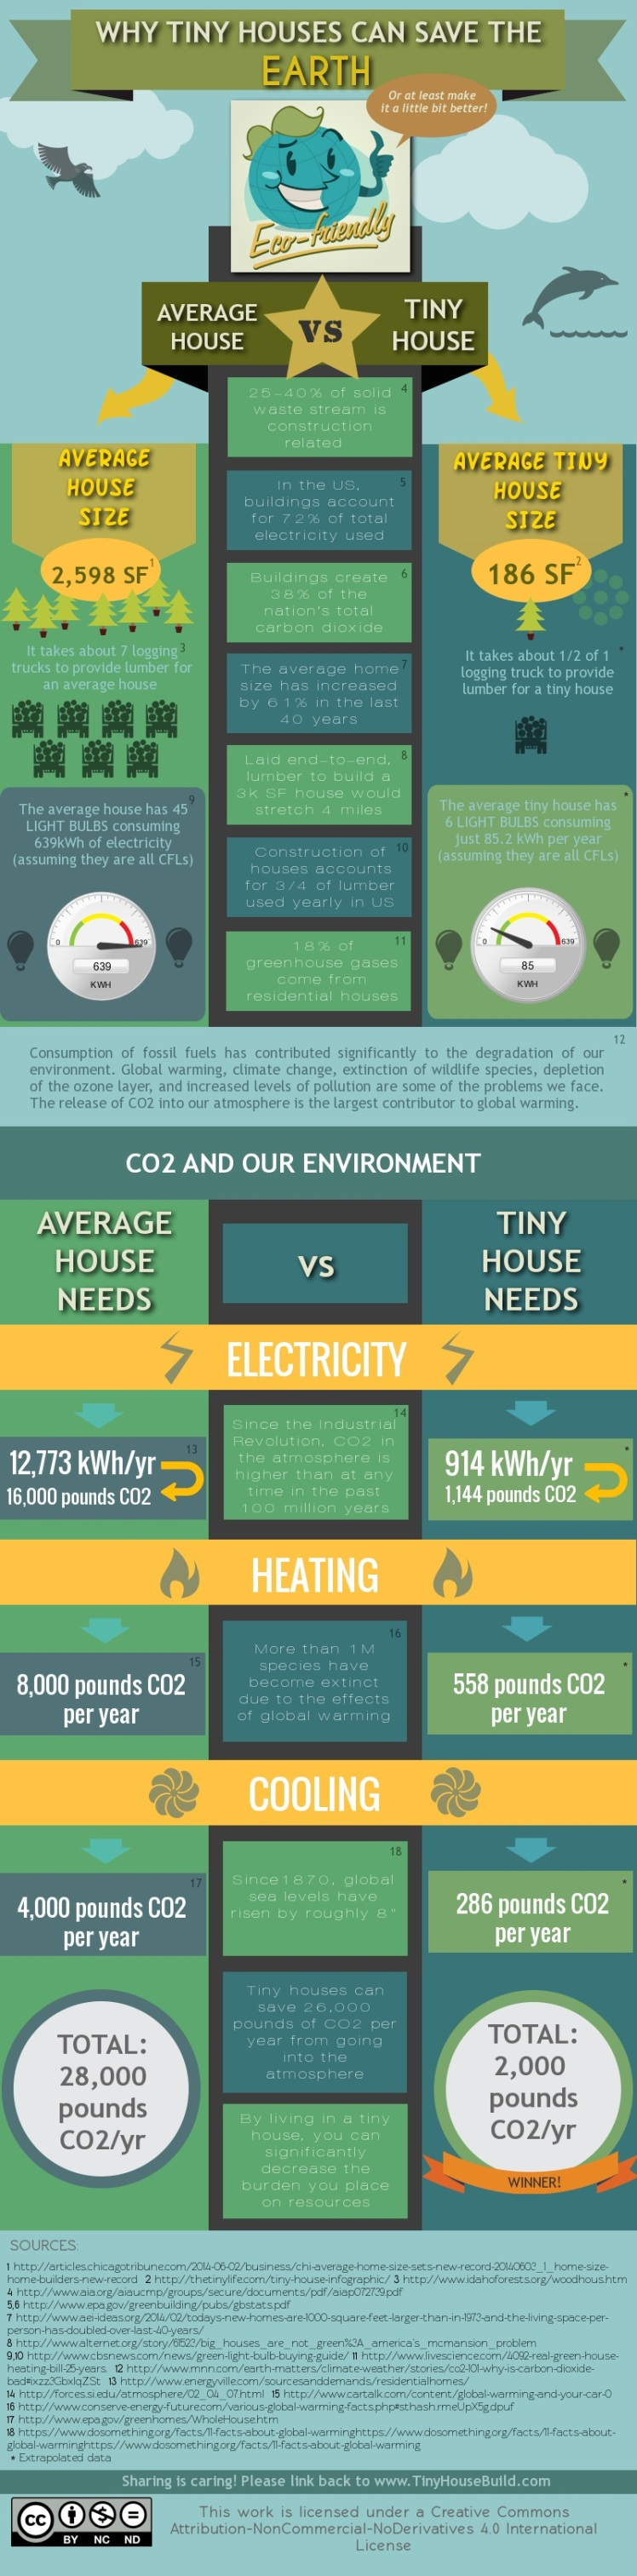 why-tiny-houses-can-save-earth-infographic